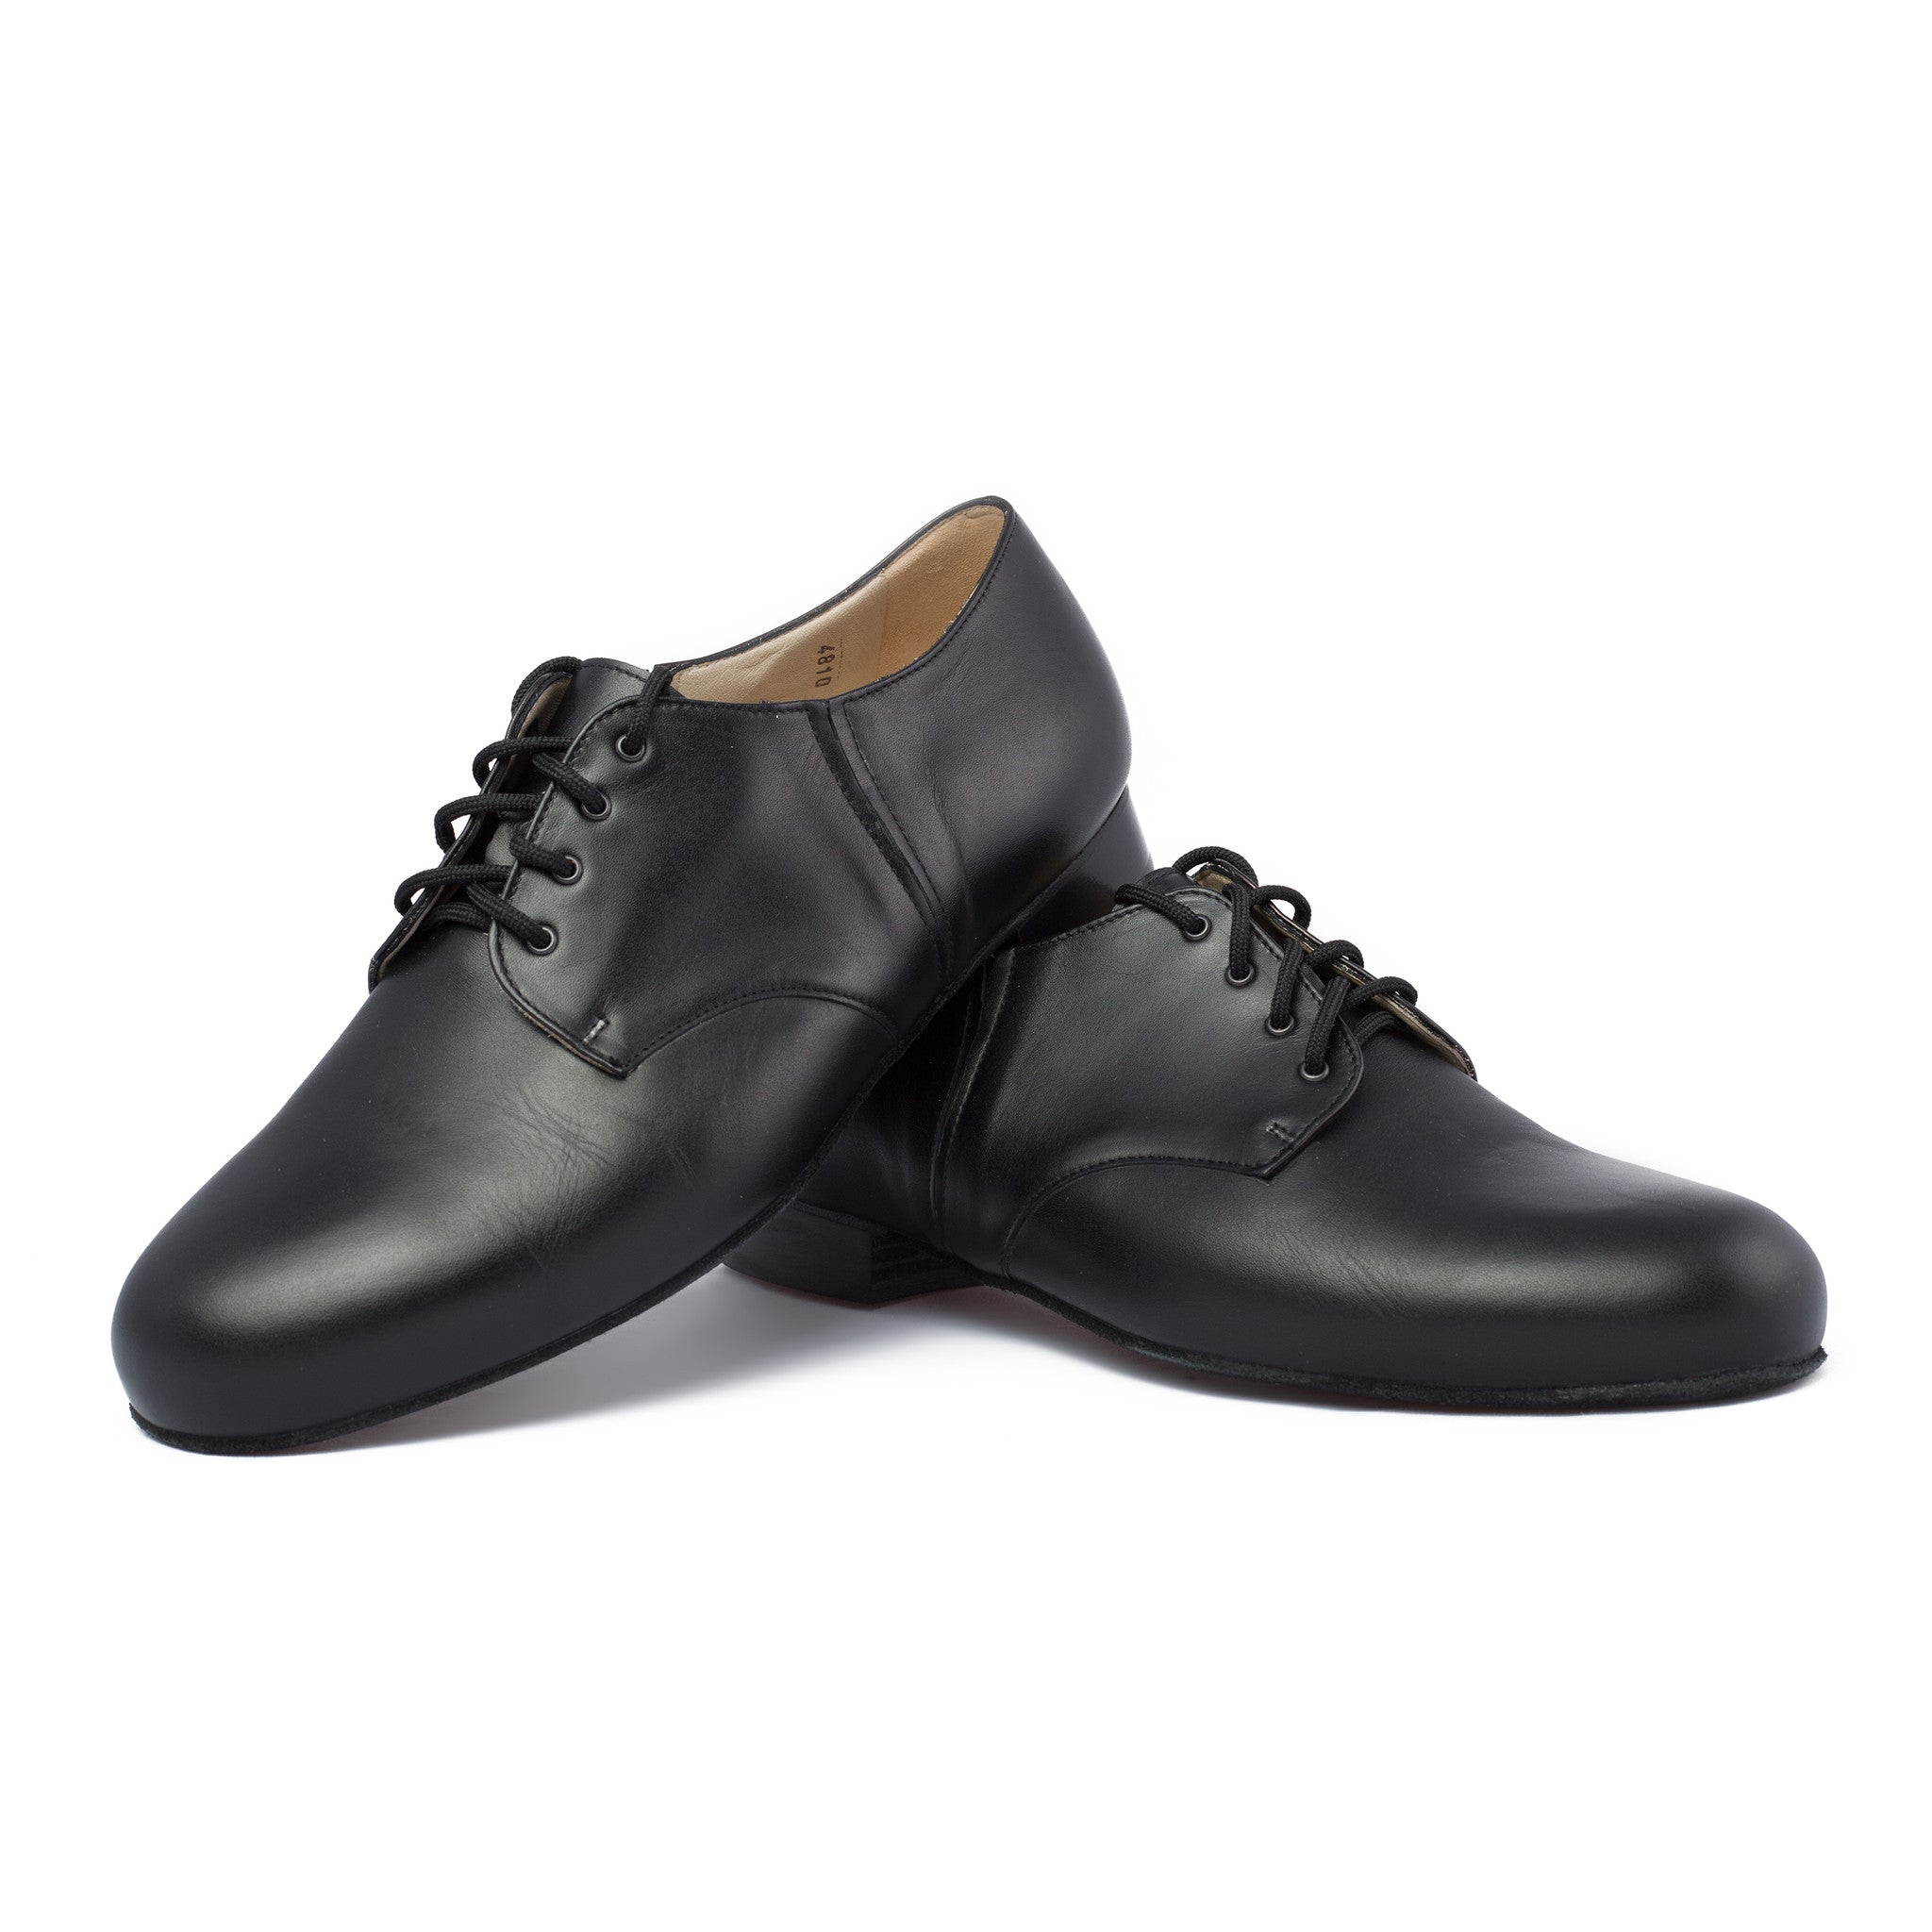 021df46307ca Edward Character Soft Sole - LaDuca Shoes